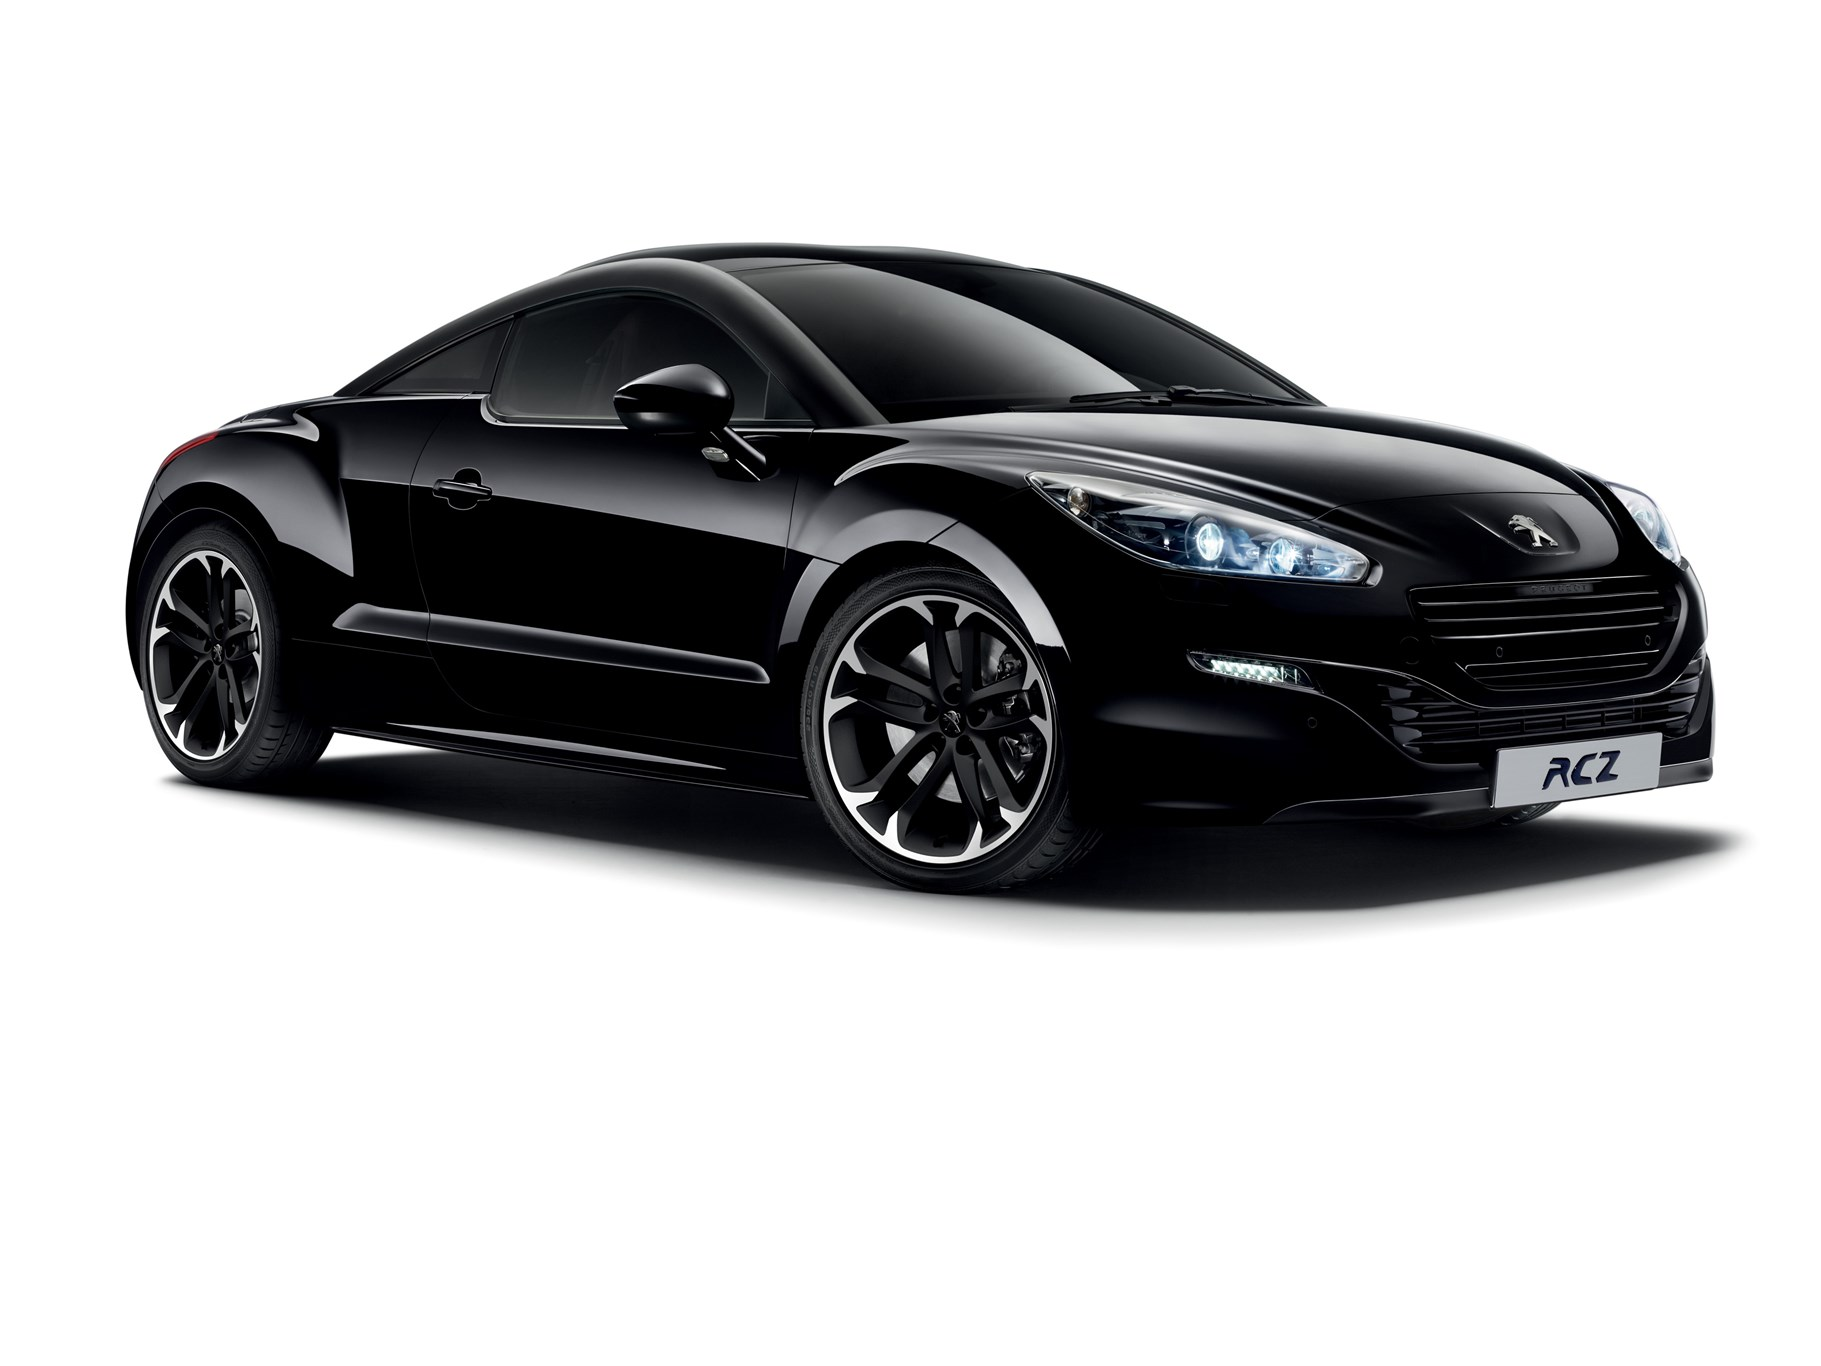 peugeot rcz by car magazine. Black Bedroom Furniture Sets. Home Design Ideas